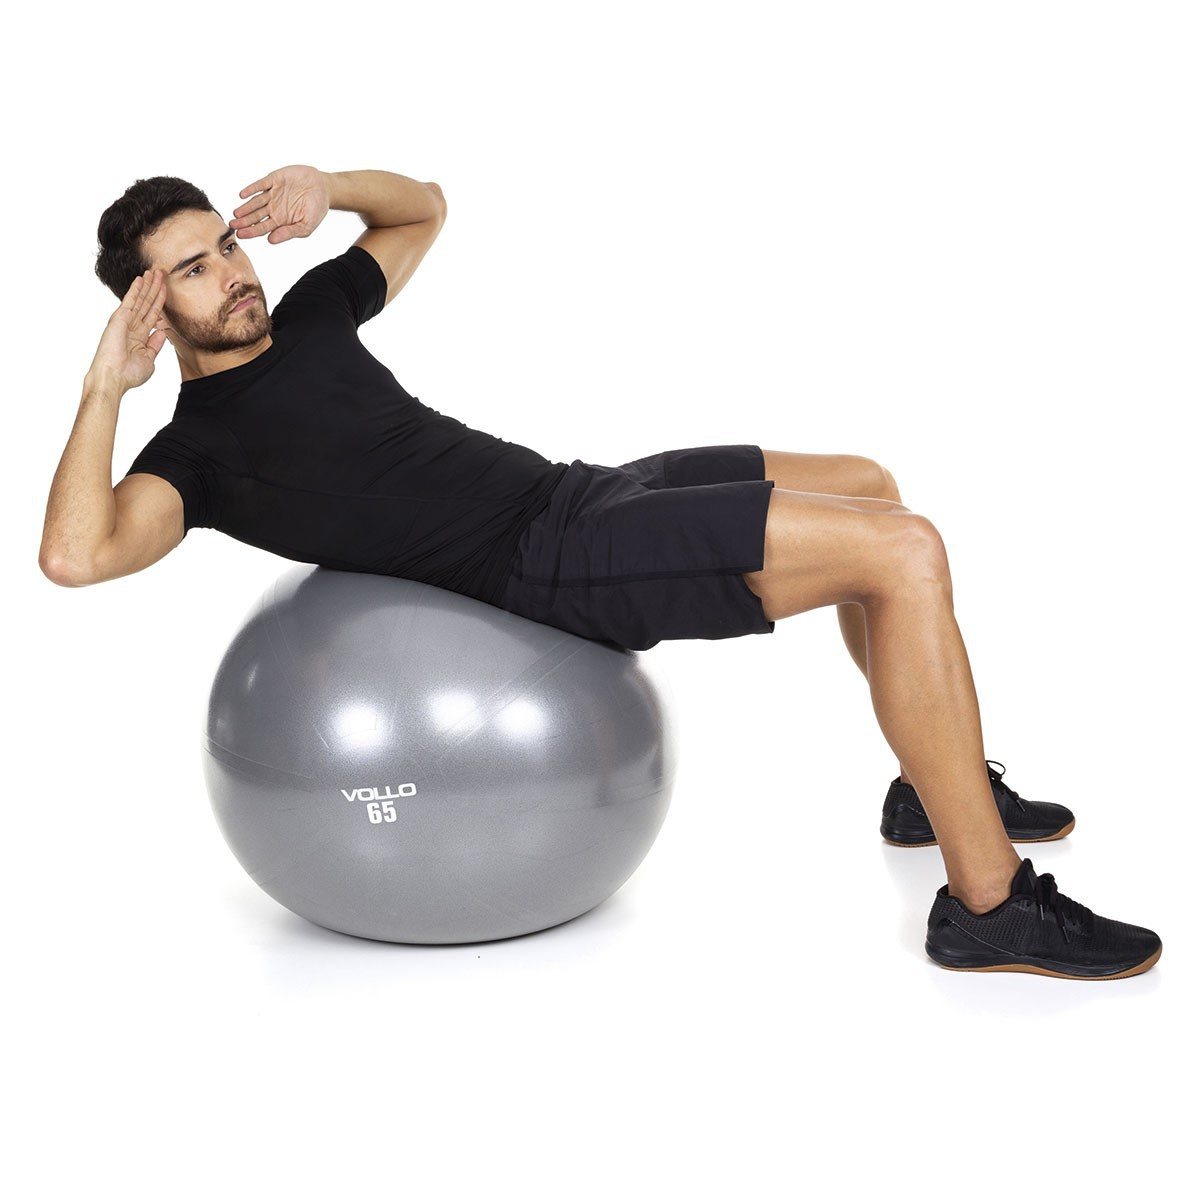 BOLA SUIÇA GYM BALL 65 CM CINZA COM BOMBA VOLLO